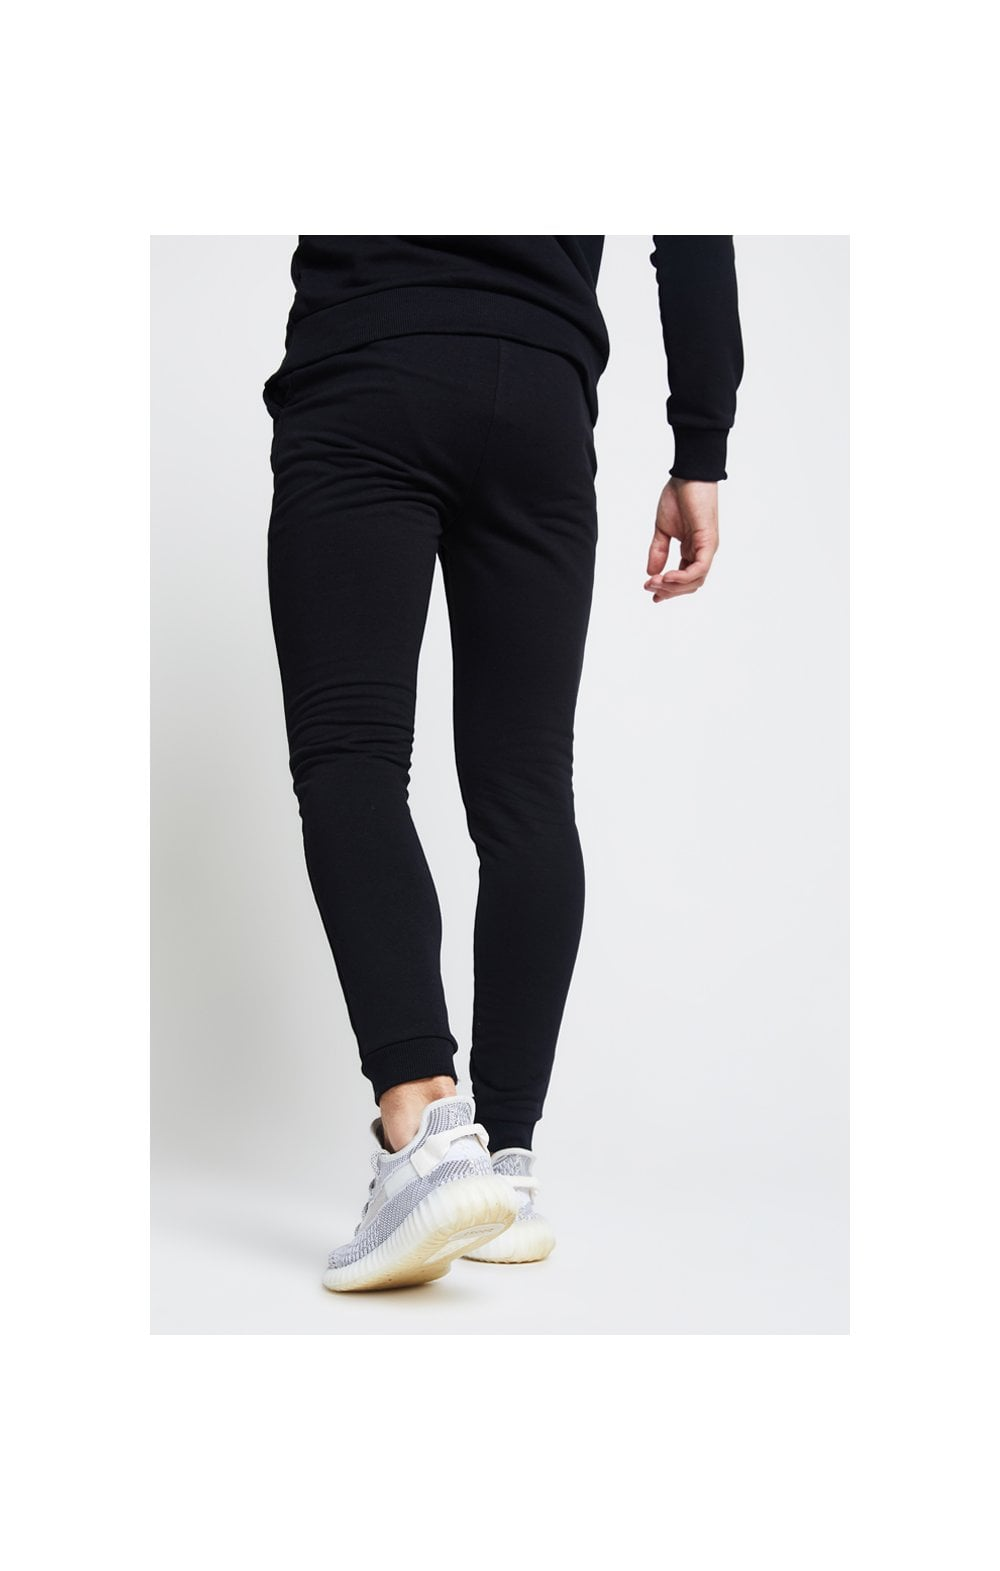 Illusive London Joggers – Black (2)